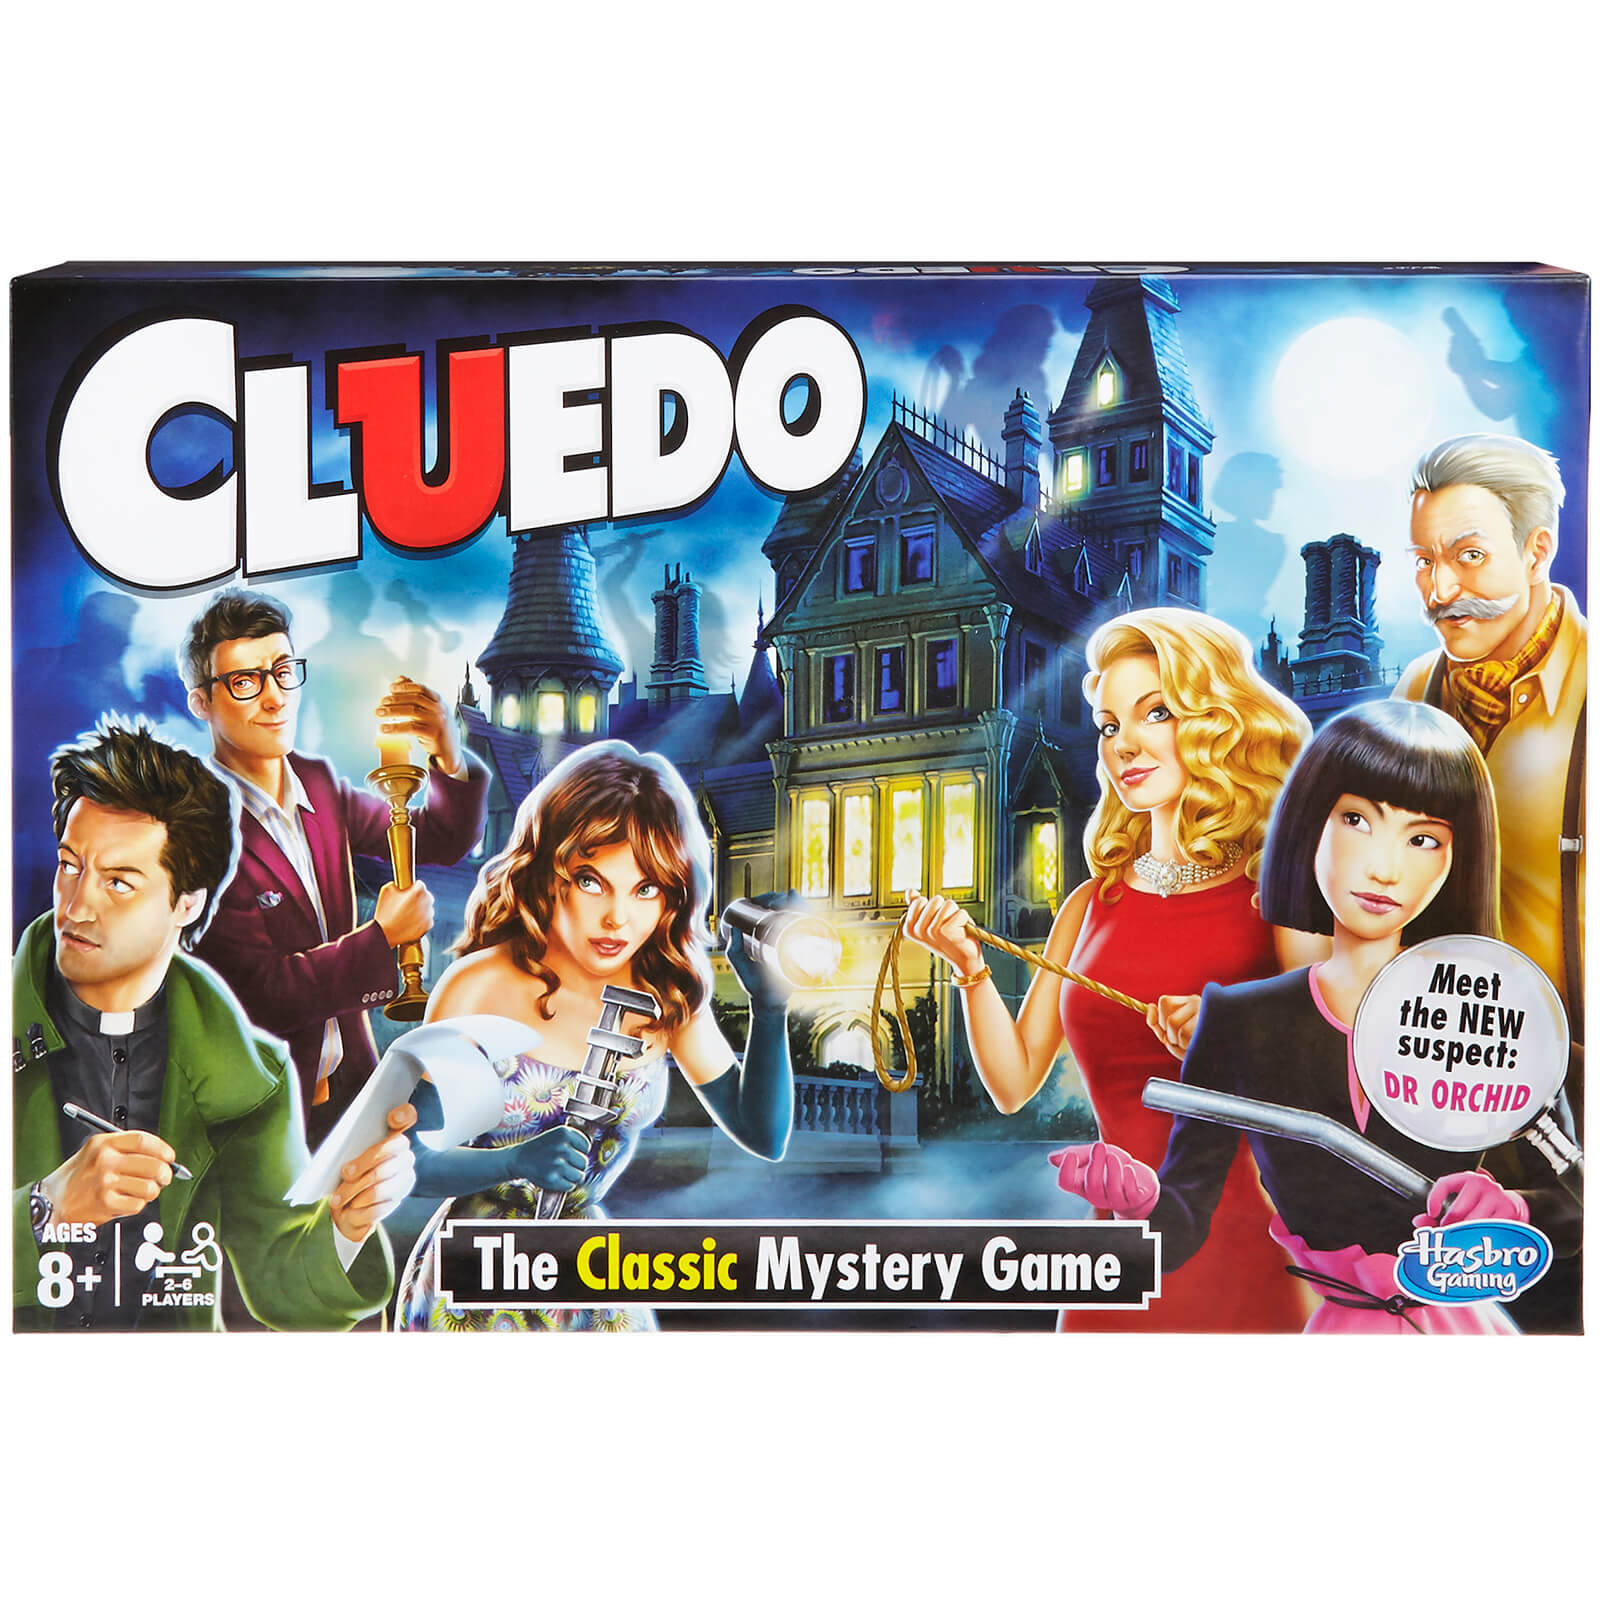 Image of Hasbro Gaming Cluedo the Classic Mystery Game